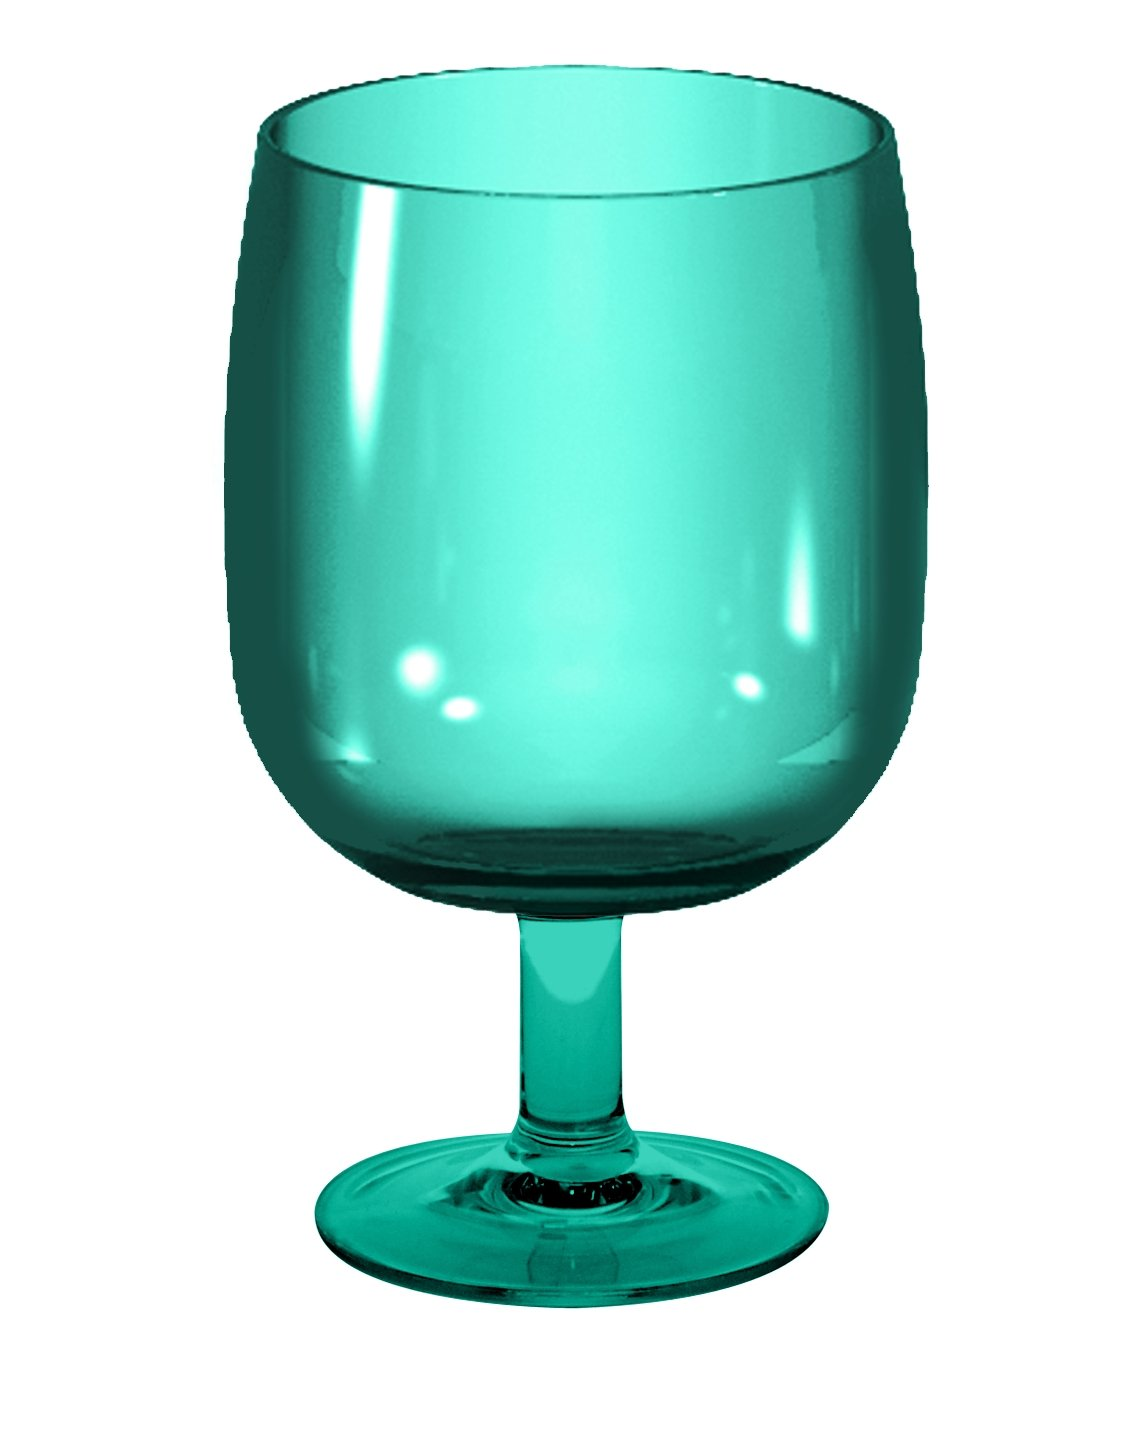 zak! 25 cl Stacky Stem Glass, Aqua Blue